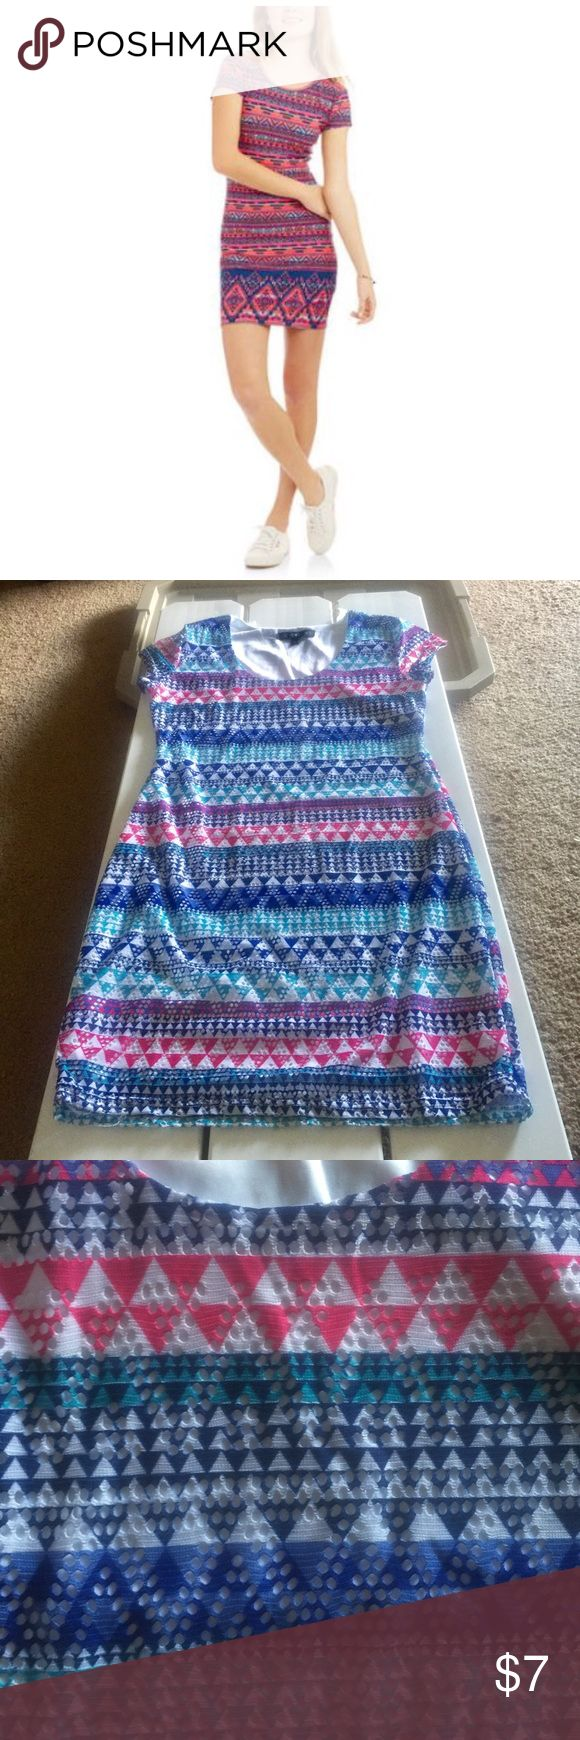 Summer Dress Summer dress size Junior Large in mint used condition .   2-4 th pictures show actual color of the dress vibrant blues , pinks and teals . Derek Heart Dresses